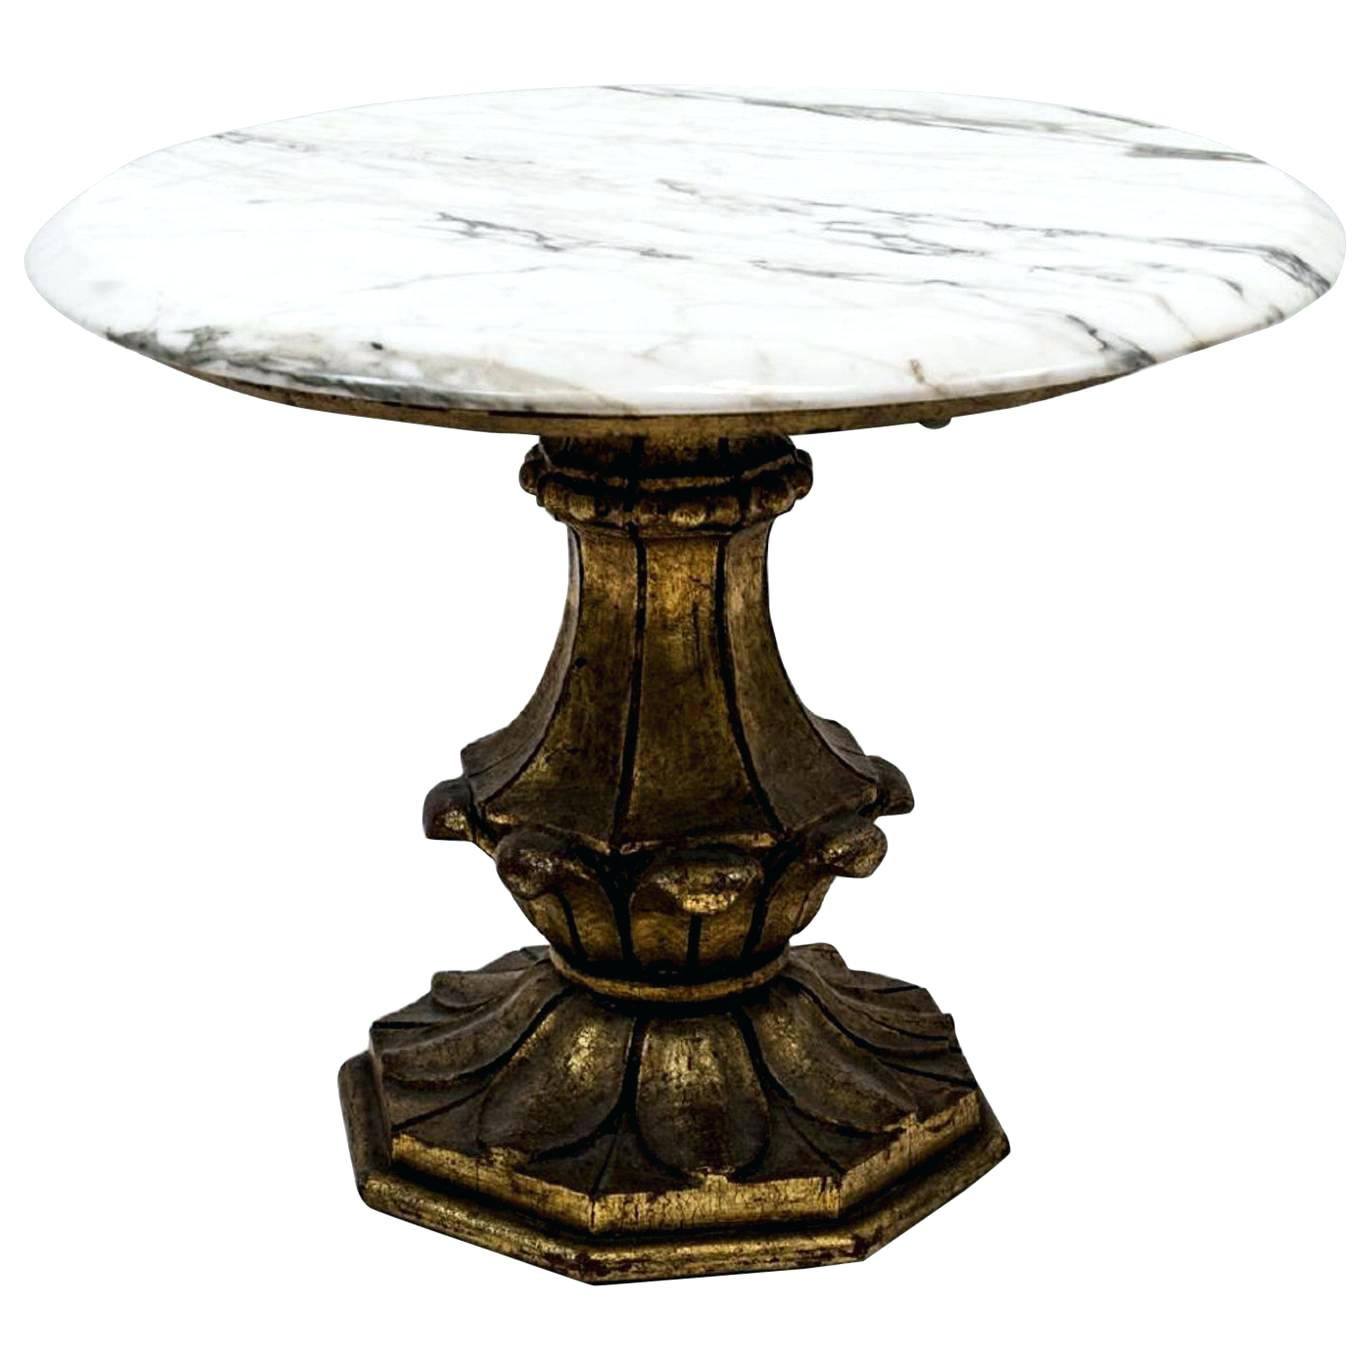 vintage round accent table with marble top and base tables butler coffee arrangements nautical bedside lamps black wicker side dining couch seating home bar furniture west elm